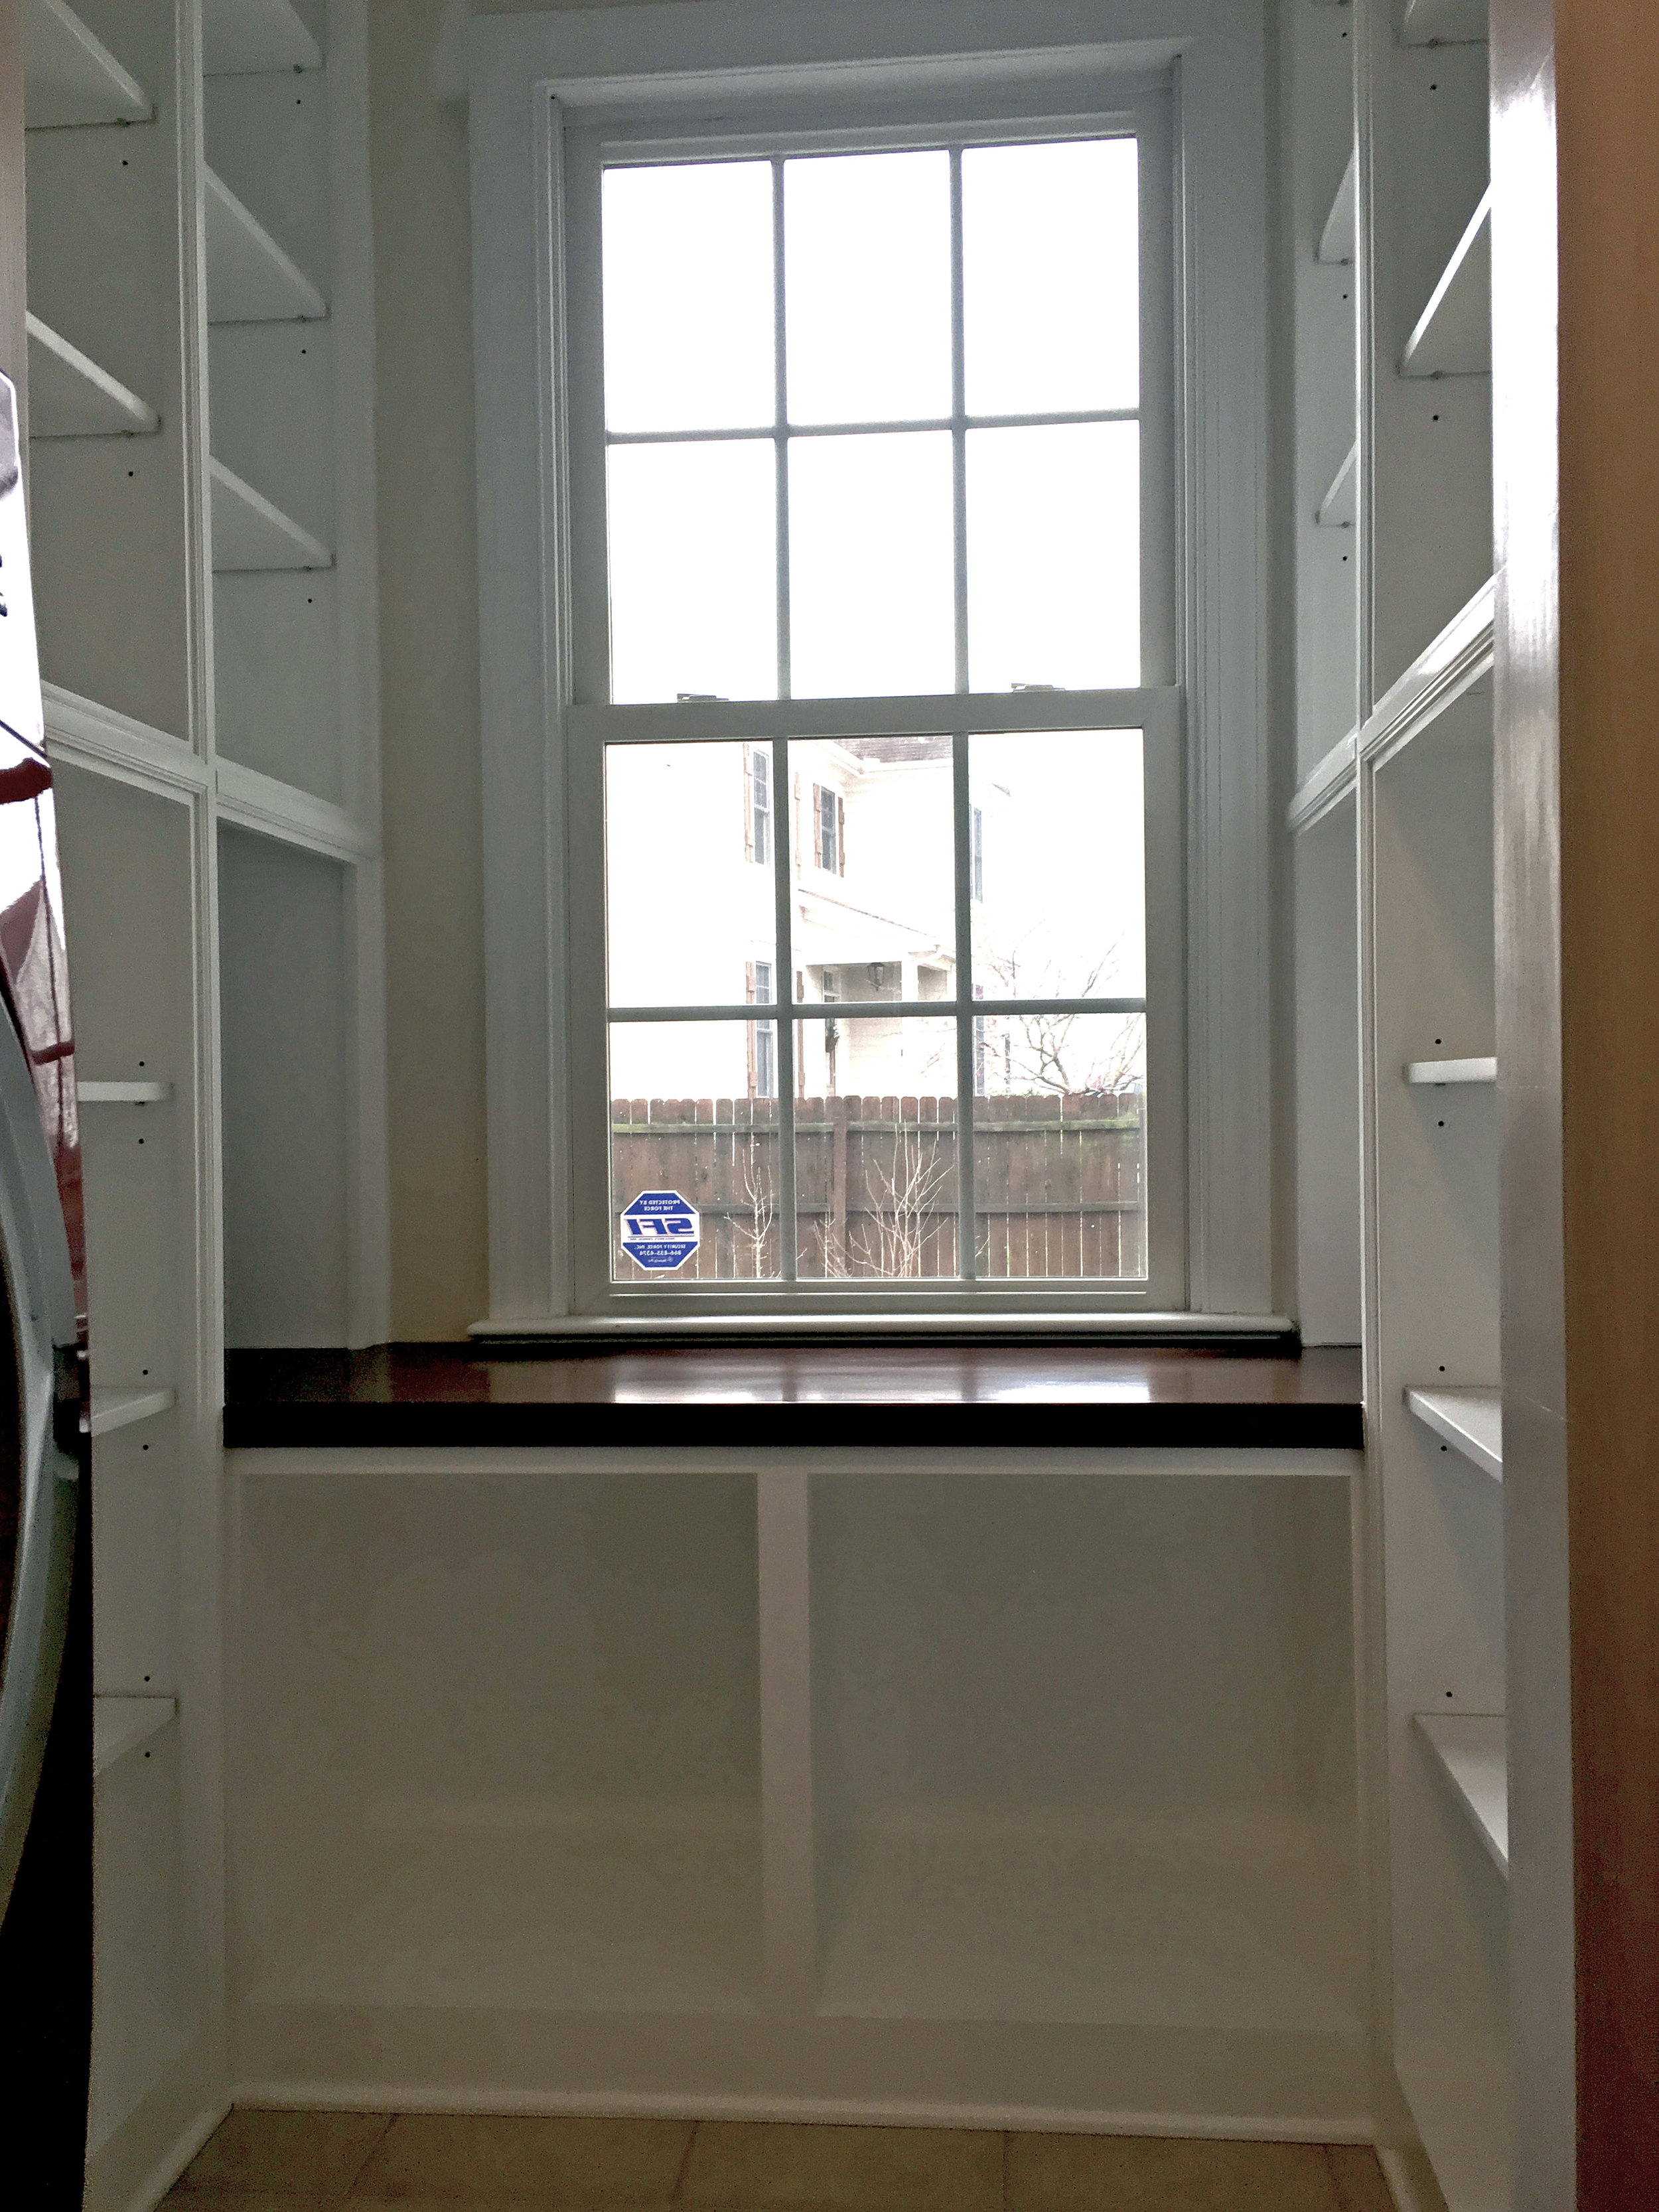 Custom U-Shaped Pantry with Window Seat, Adjustable Shelves, and Crown